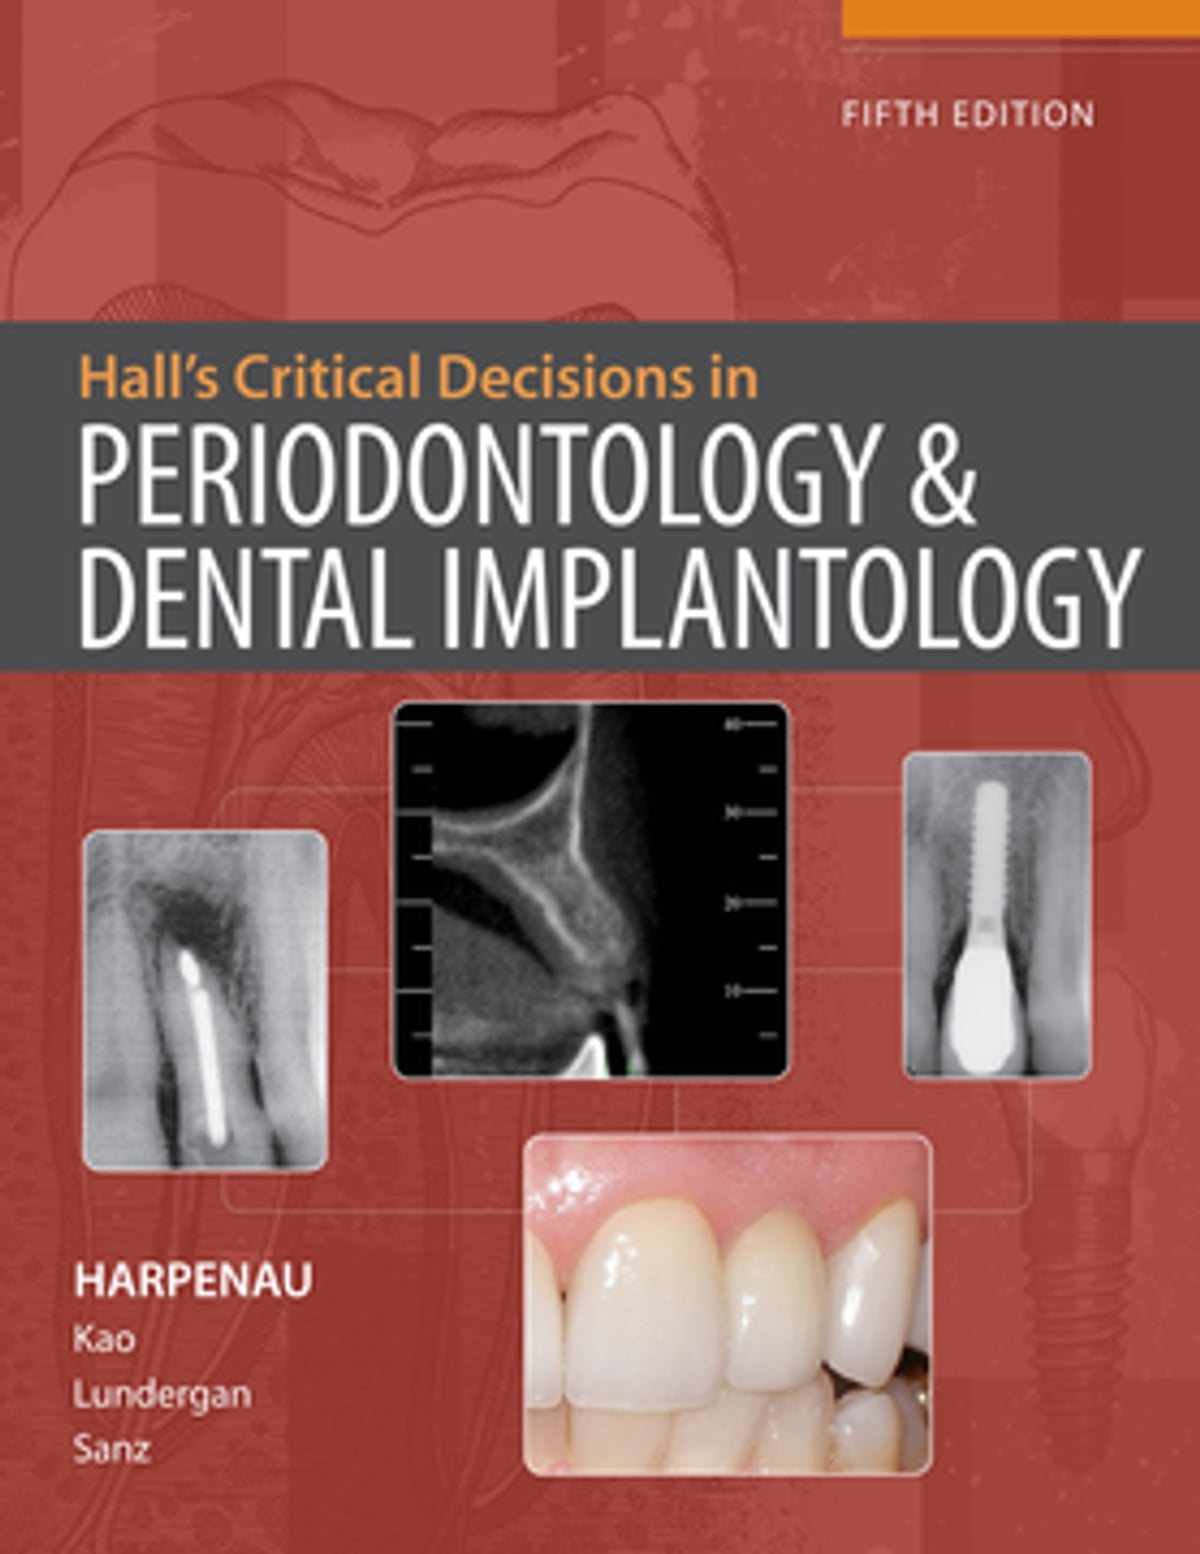 Hall's Critical Decisions in Periodontology & Dental Implantology, 5e ebook  by Lisa Harpenau - Rakuten Kobo